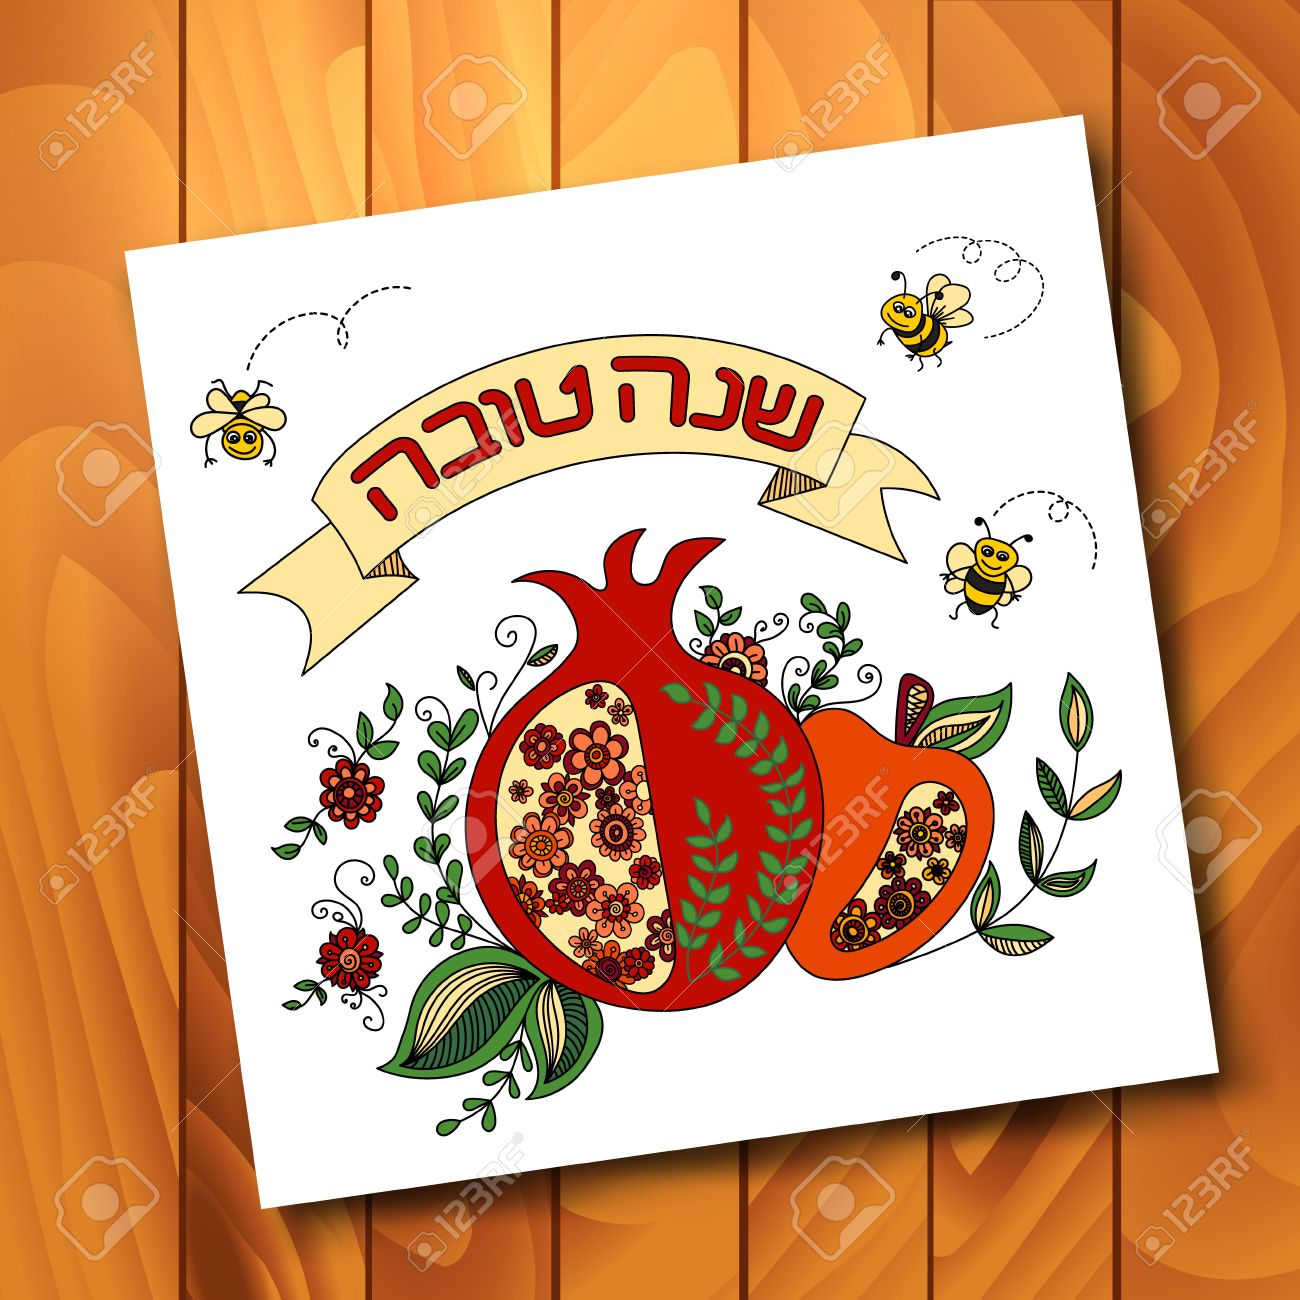 Rosh hashanah jewish new year greeting card with pomegranate rosh hashanah jewish new year greeting card with pomegranate hebrew text kristyandbryce Choice Image